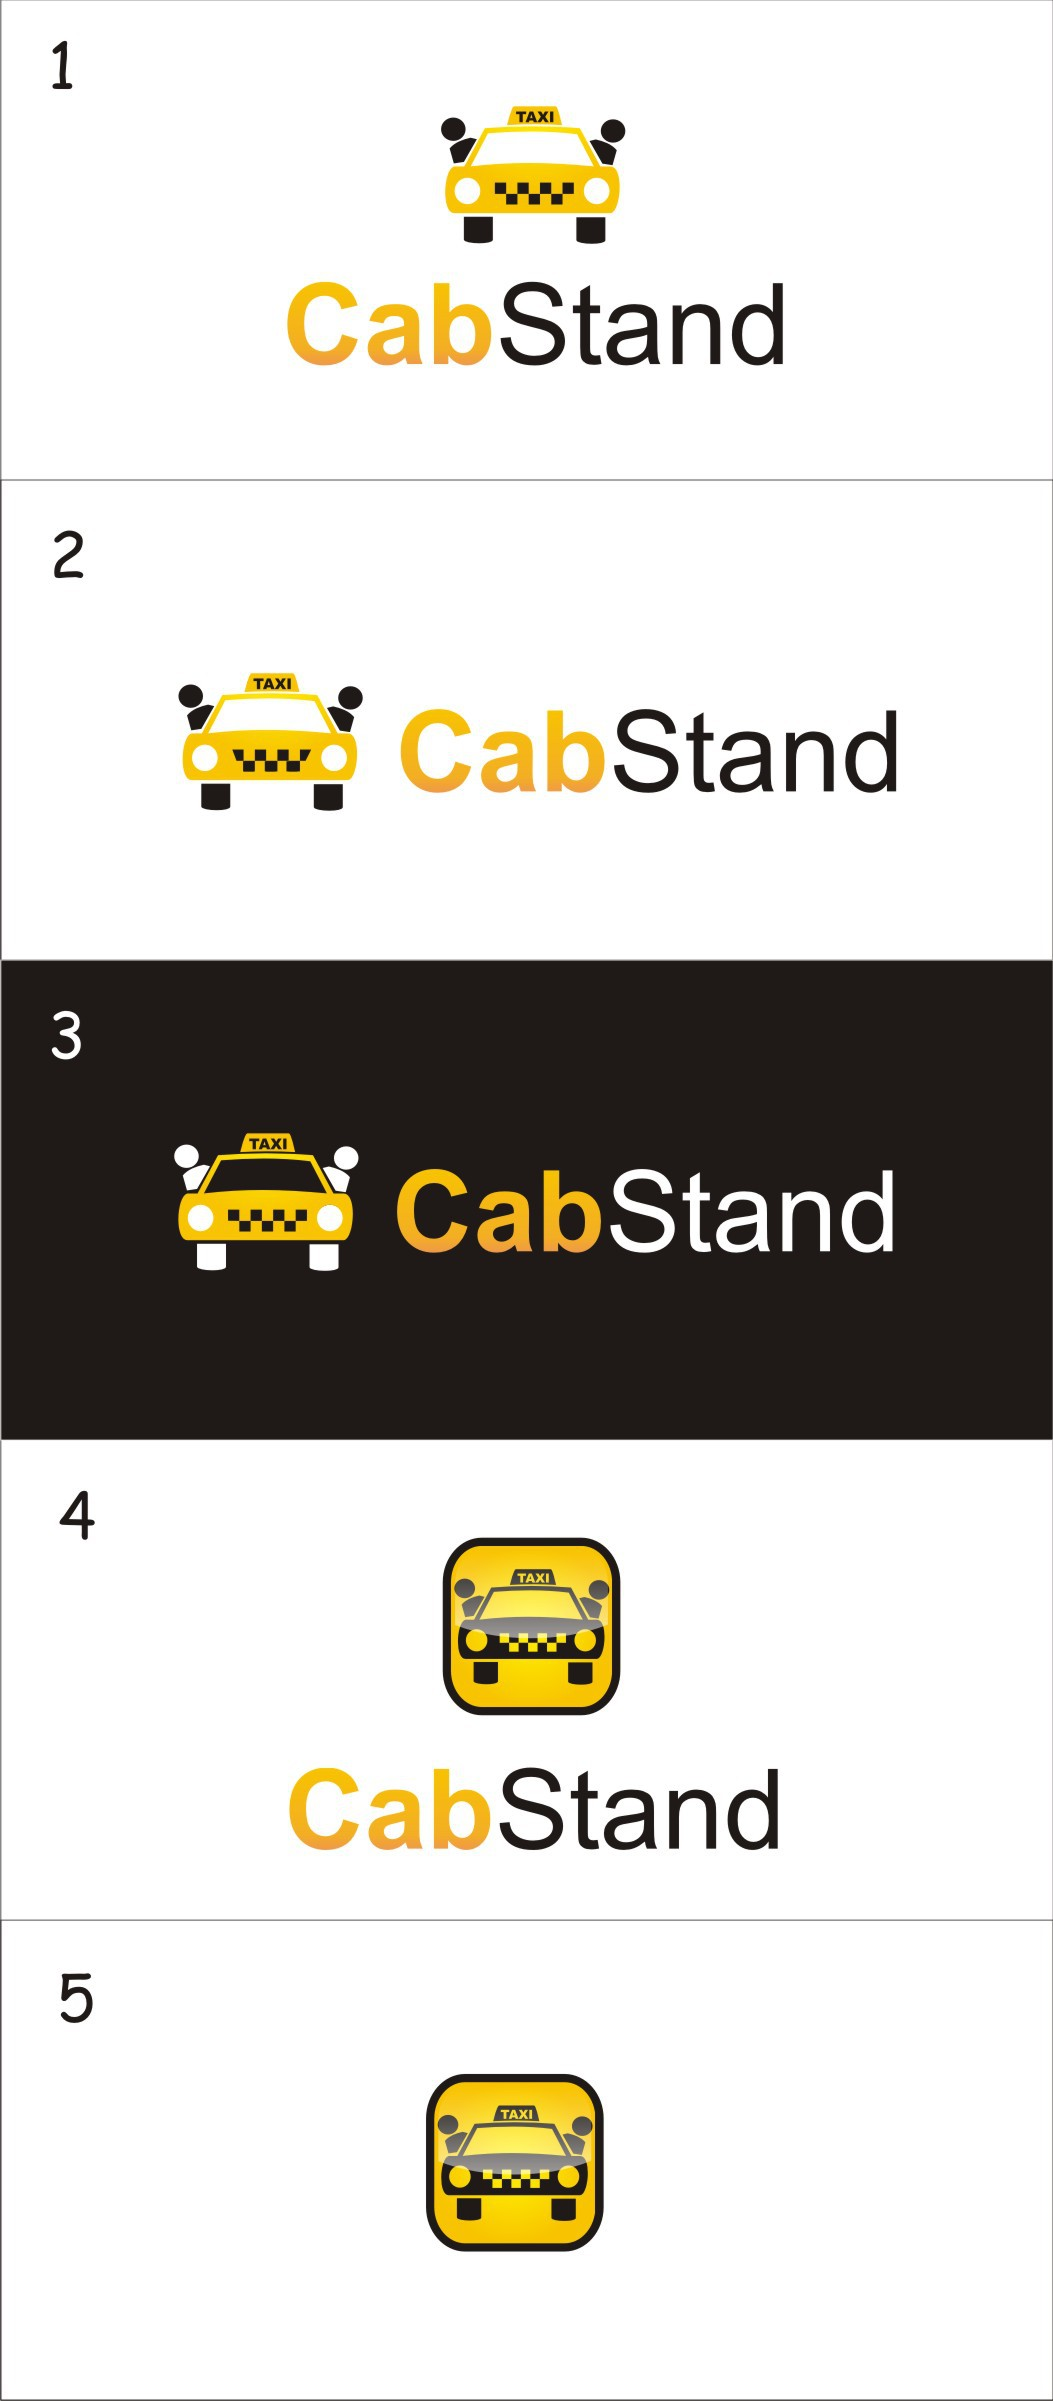 Cool logo/icon wanted for CabSharing iOS app!